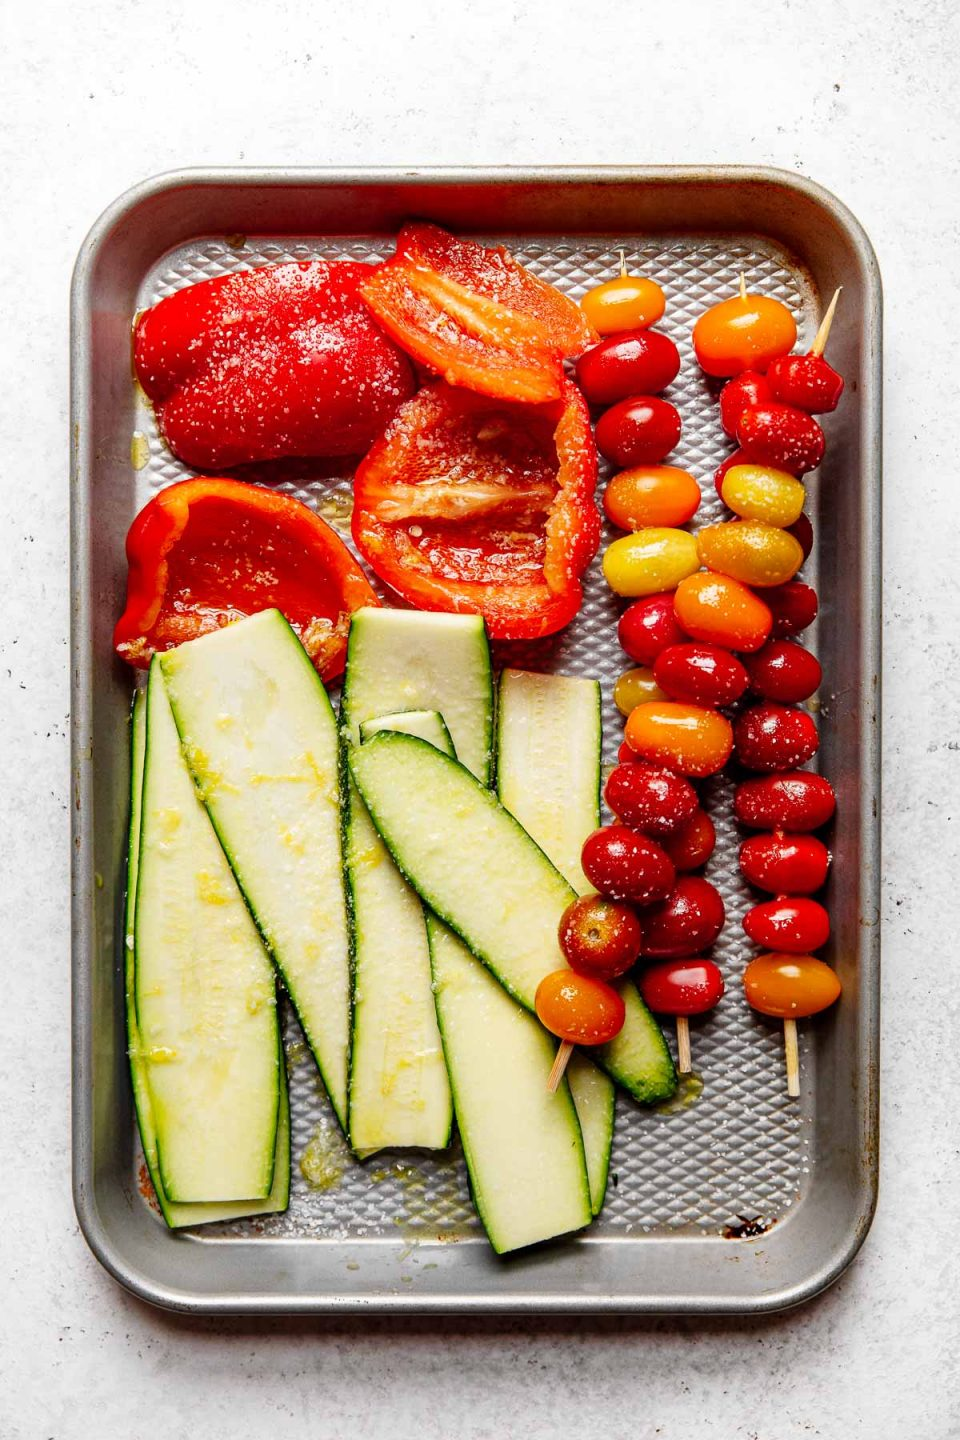 Marinated veggies (Zucchini, bell pepper, tomatoes) on a quarter baking sheet atop a white surface.